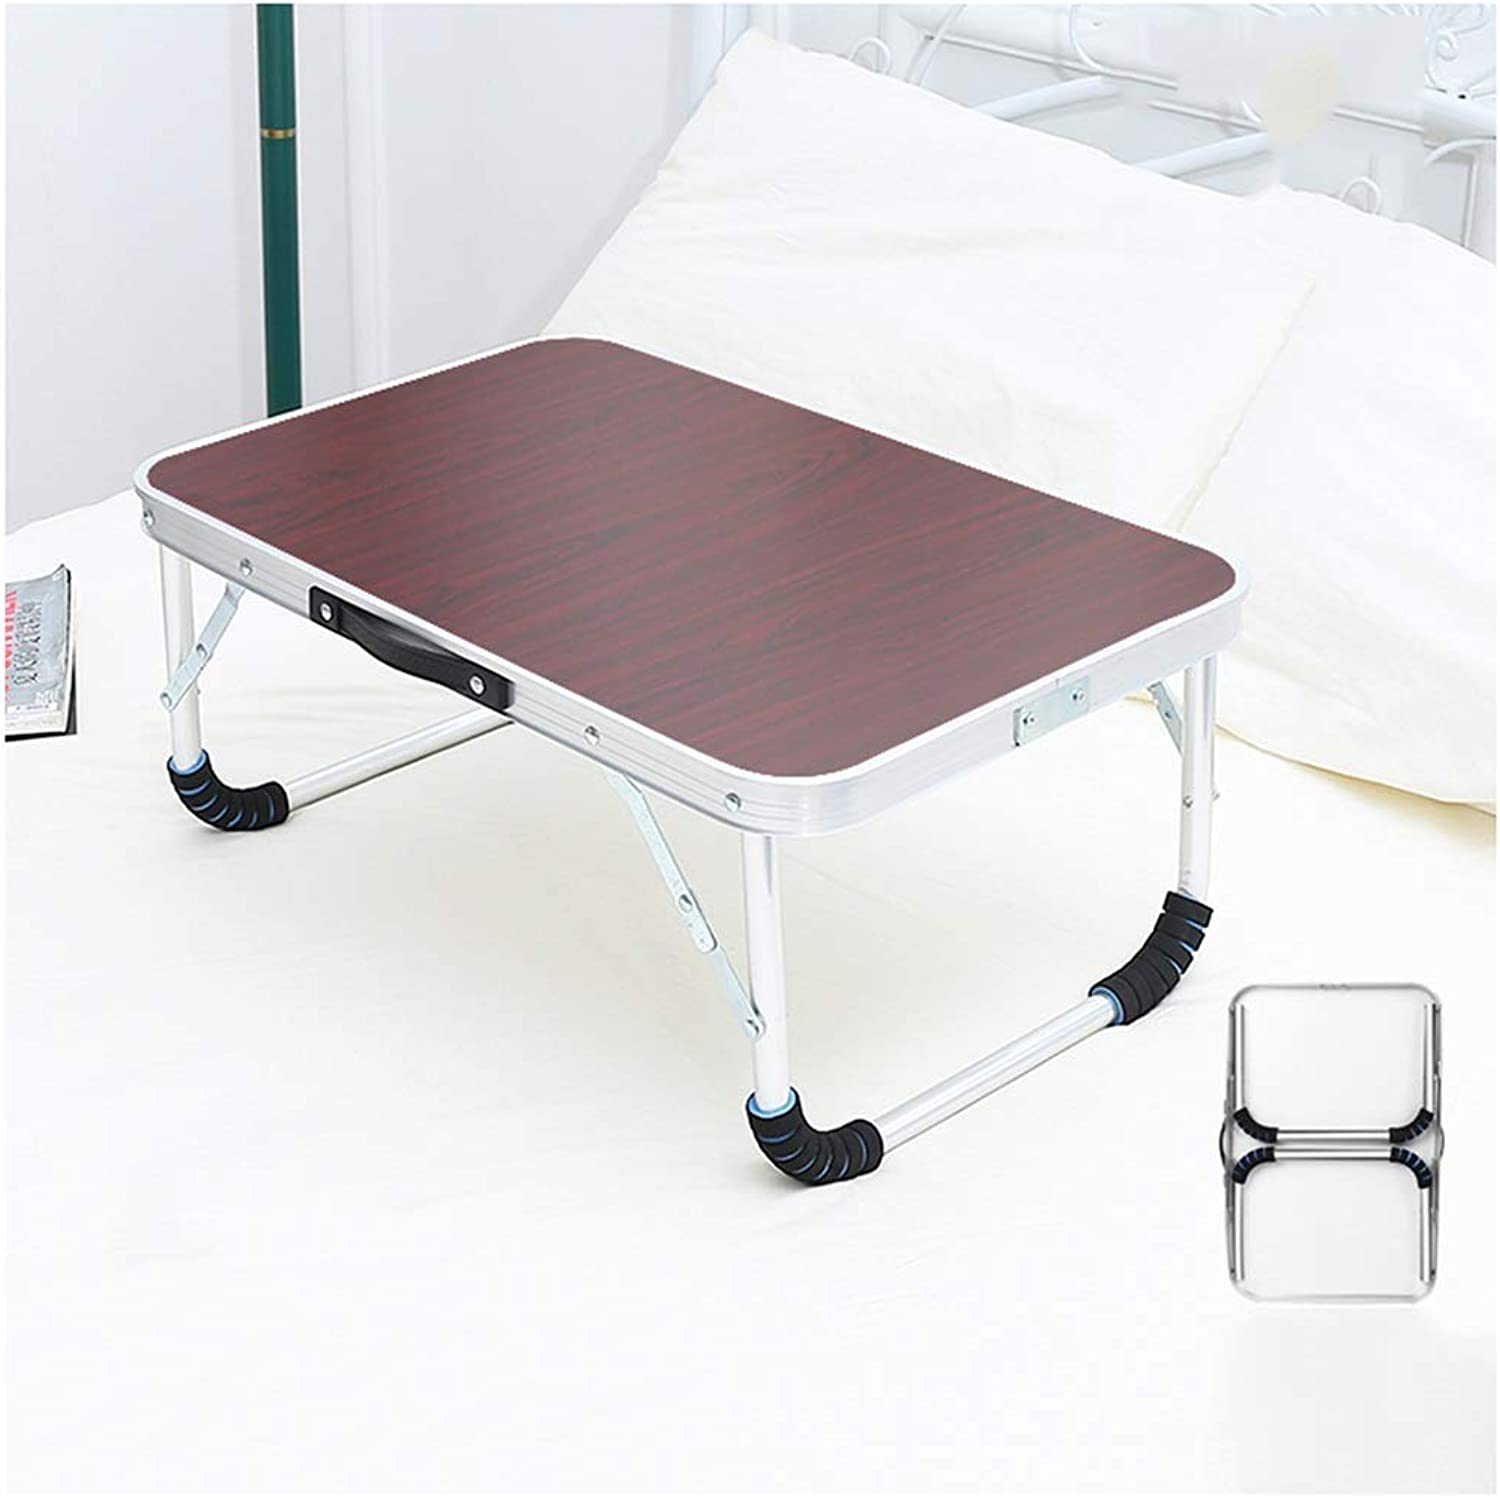 Folding Table Portable Aluminum Folding Table - Bed Laptop Desk Student Dormitory Learning Table (color   Red, Size   60x40x26.5cm)